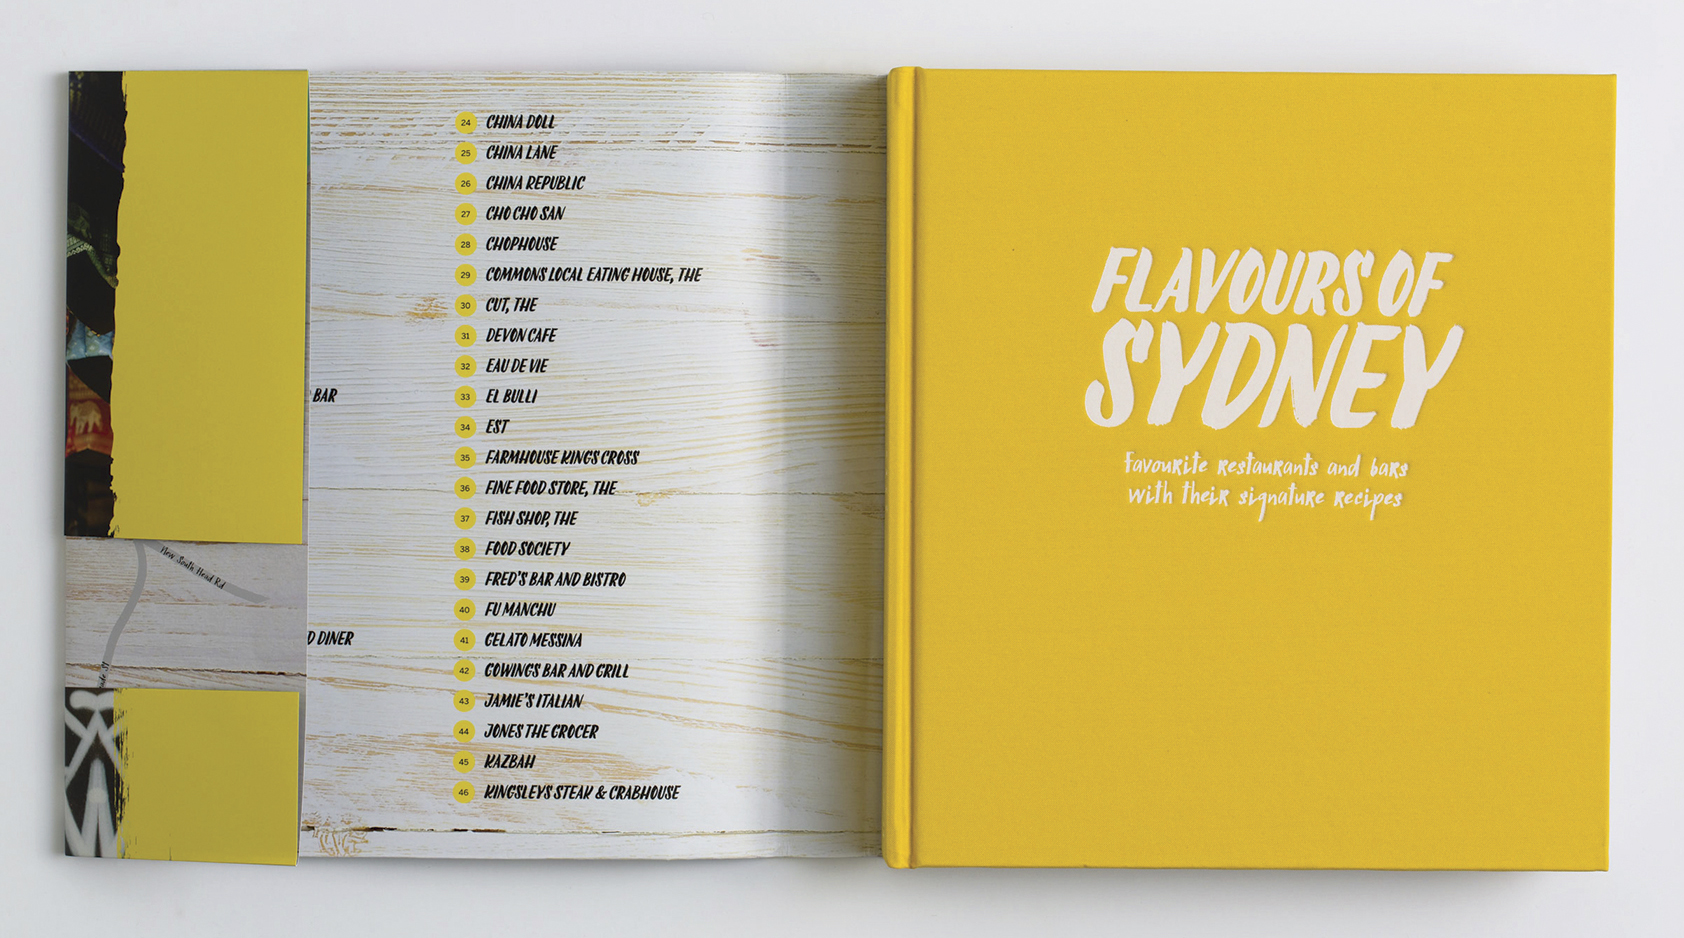 Flavours-of-Sydney-Hardcover-Photo02.jpg